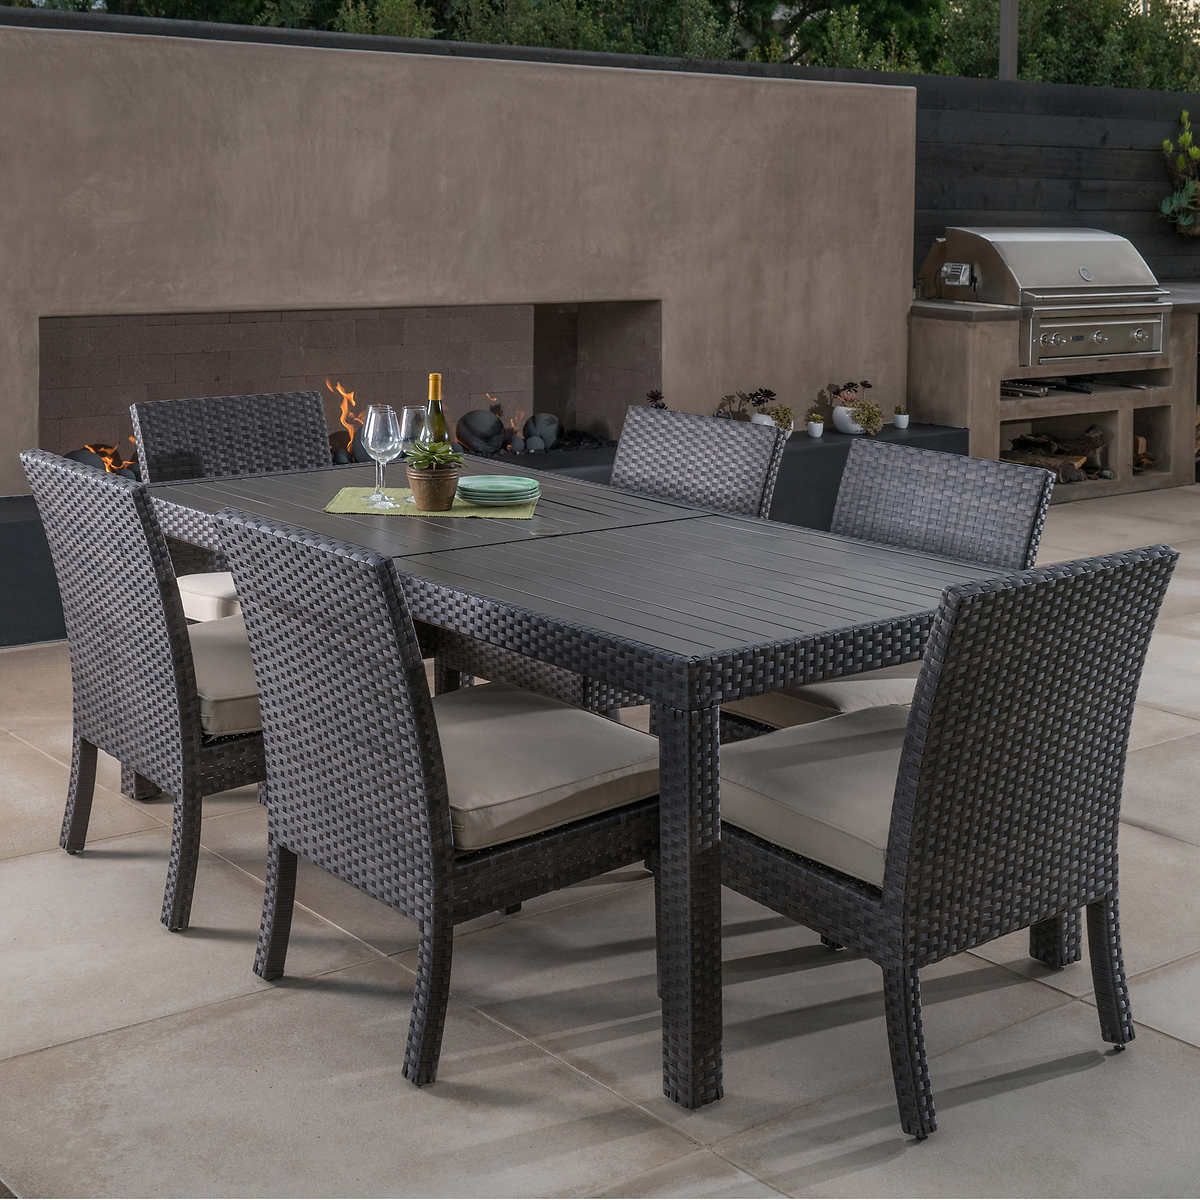 Picnic table as dining room table - Kingston 7 Piece Dining Set By Mission Hills